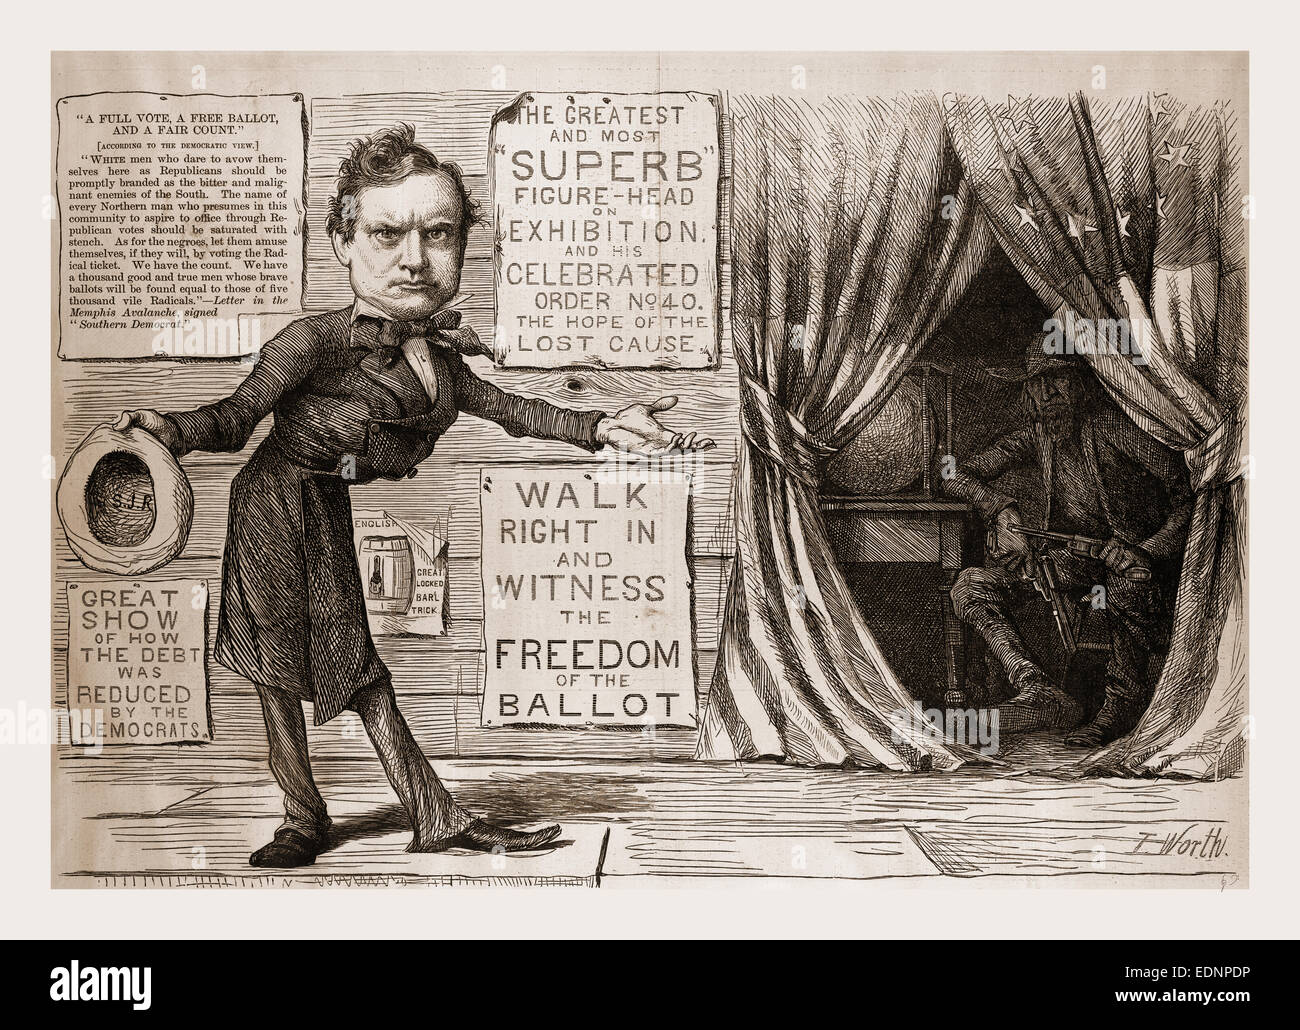 THE GREAT DEMOCRATIC MORAL SHOW., 1880, 19th century engraving, USA, America - Stock Image